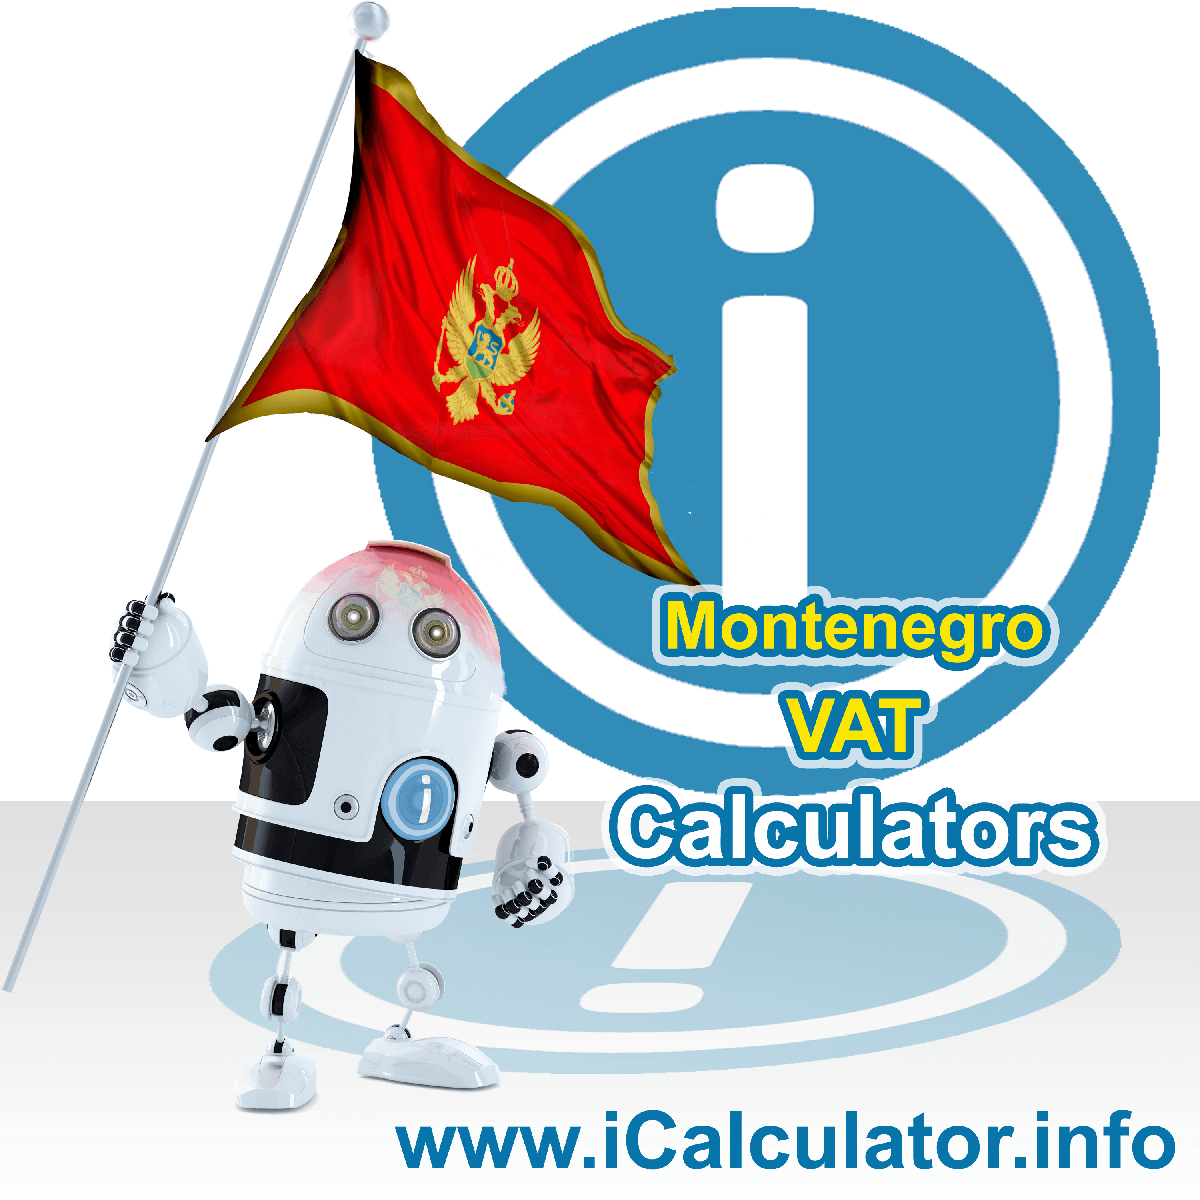 Montenegro VAT Calculator. This image shows the Montenegro flag and information relating to the VAT formula used for calculating Value Added Tax in Montenegro using the Montenegro VAT Calculator in 2021